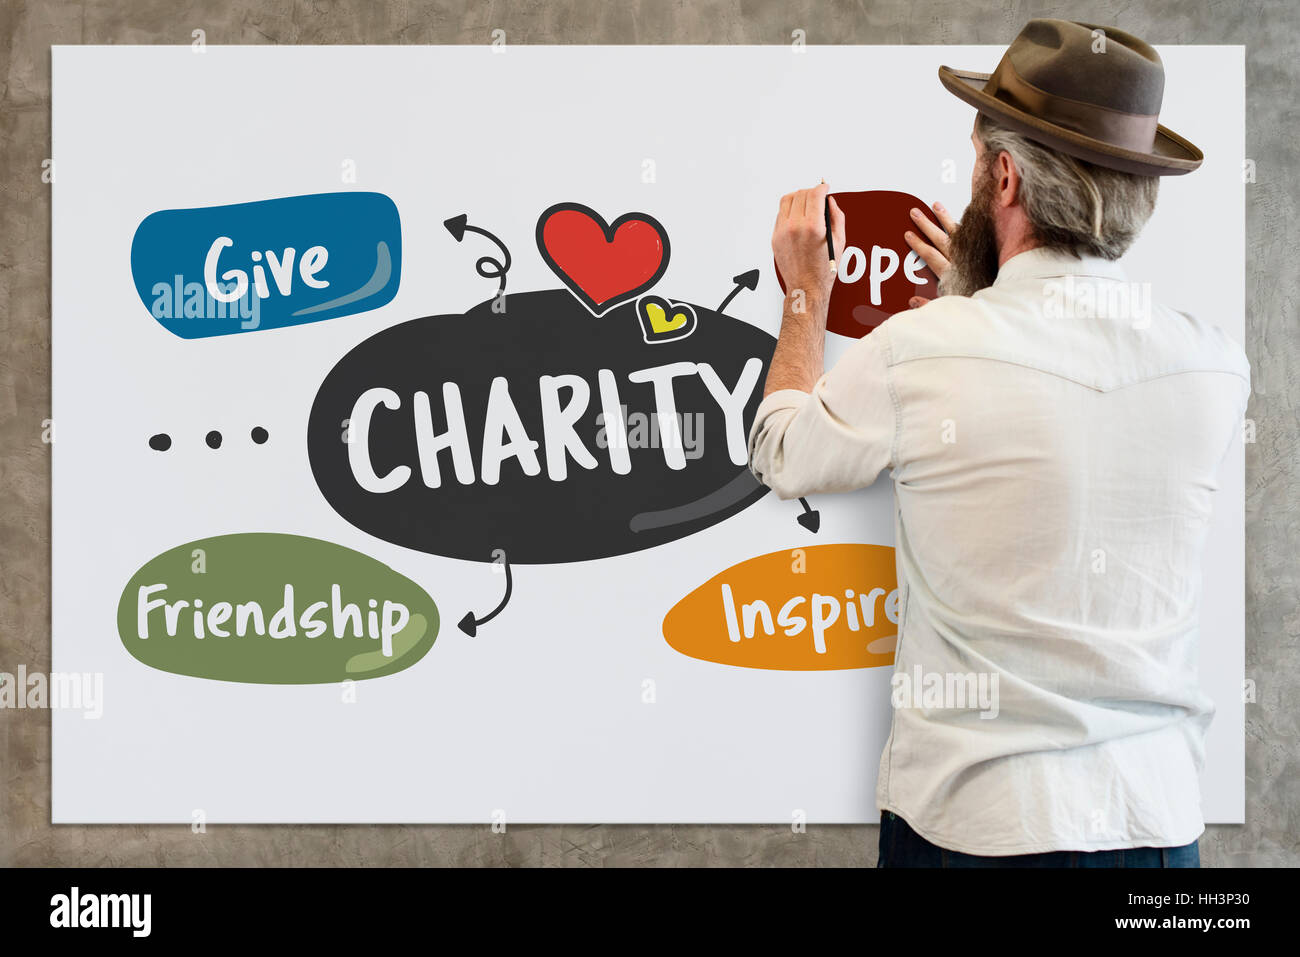 Charity Give Friendship Hope Inspire Aid Donate Concept Stock Photo